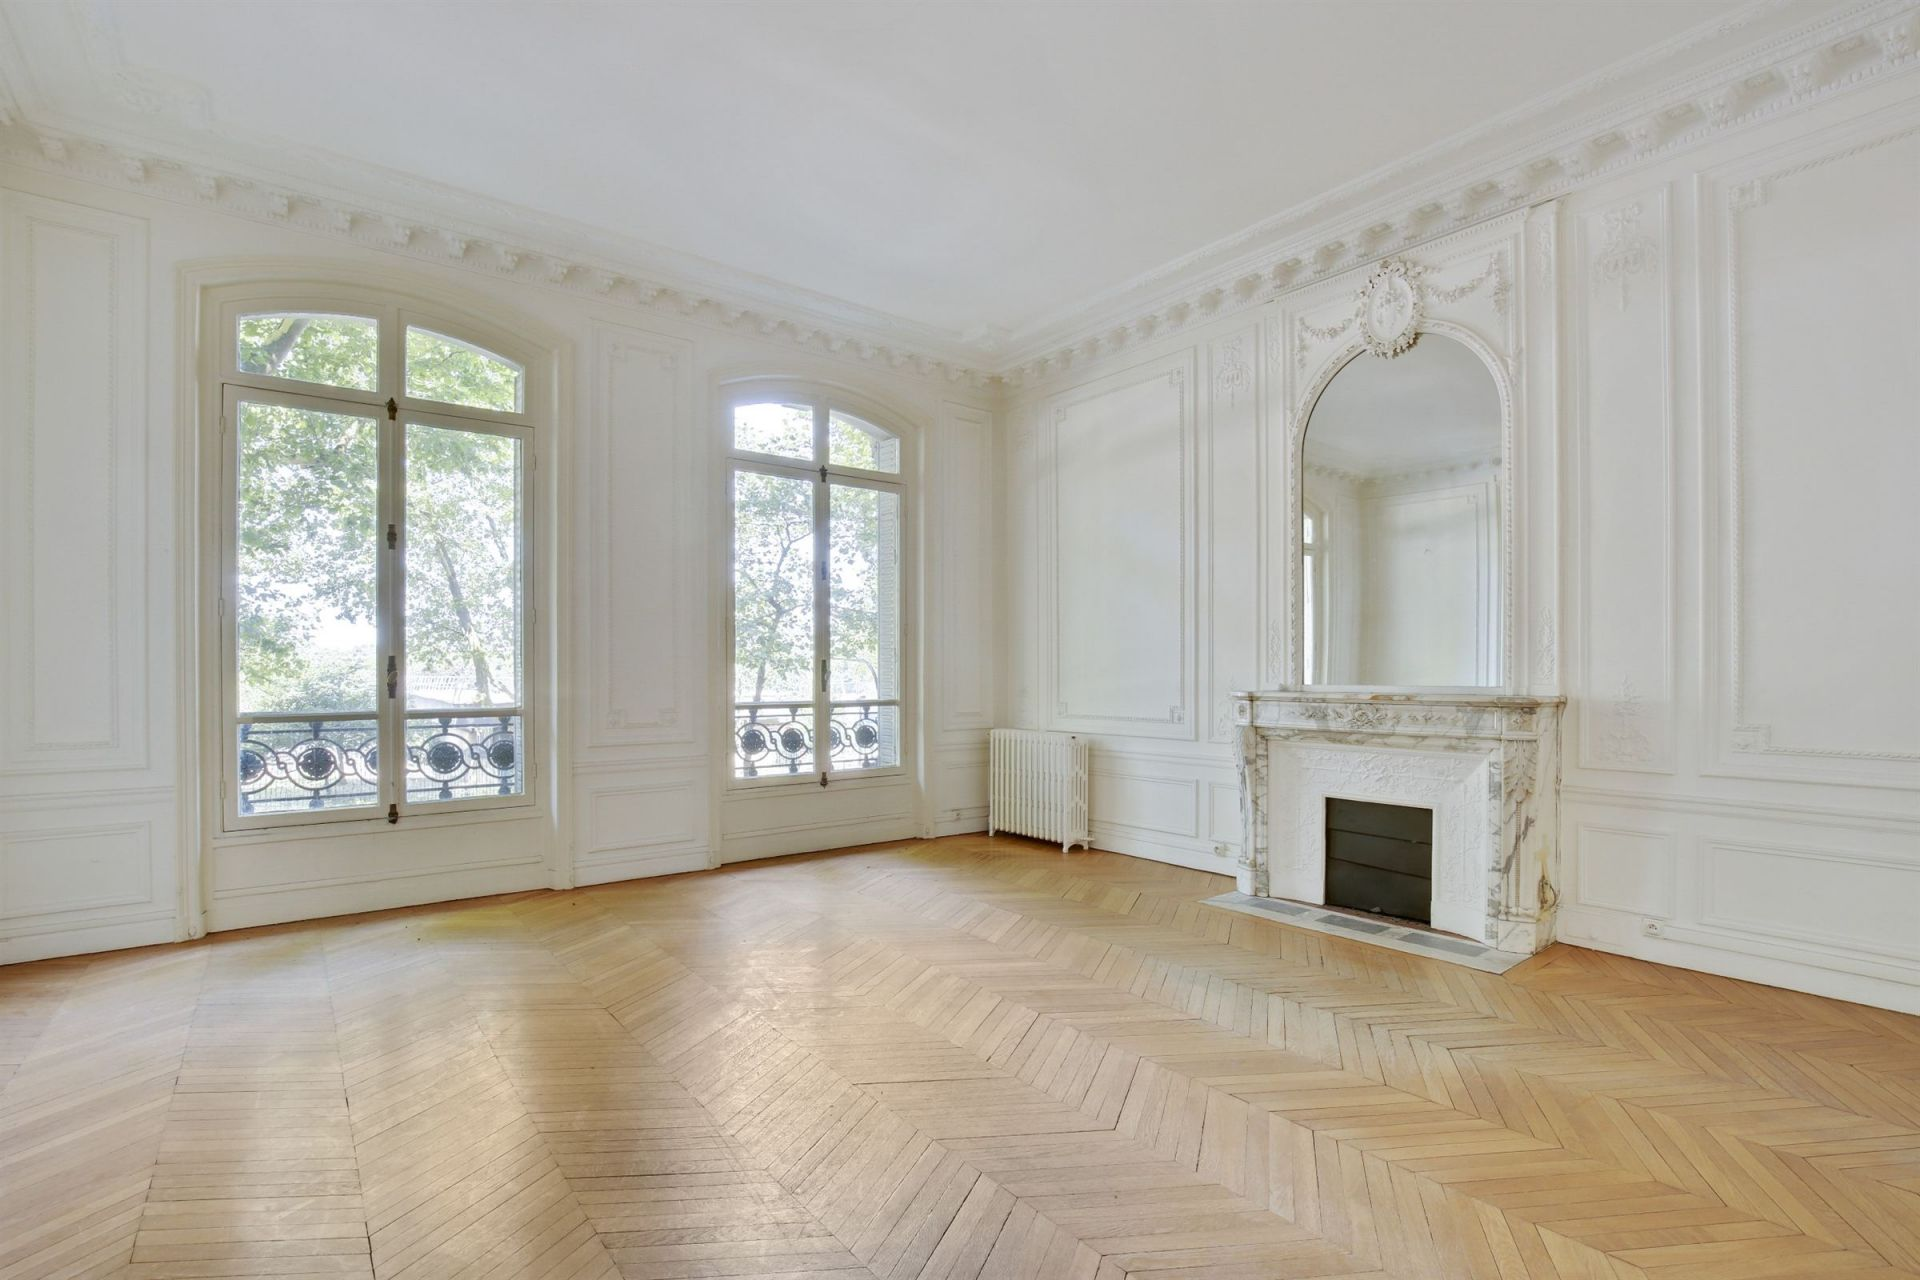 Sale Luxury house 8 rooms 5 bedrooms Neuilly Sur Seine (92200)